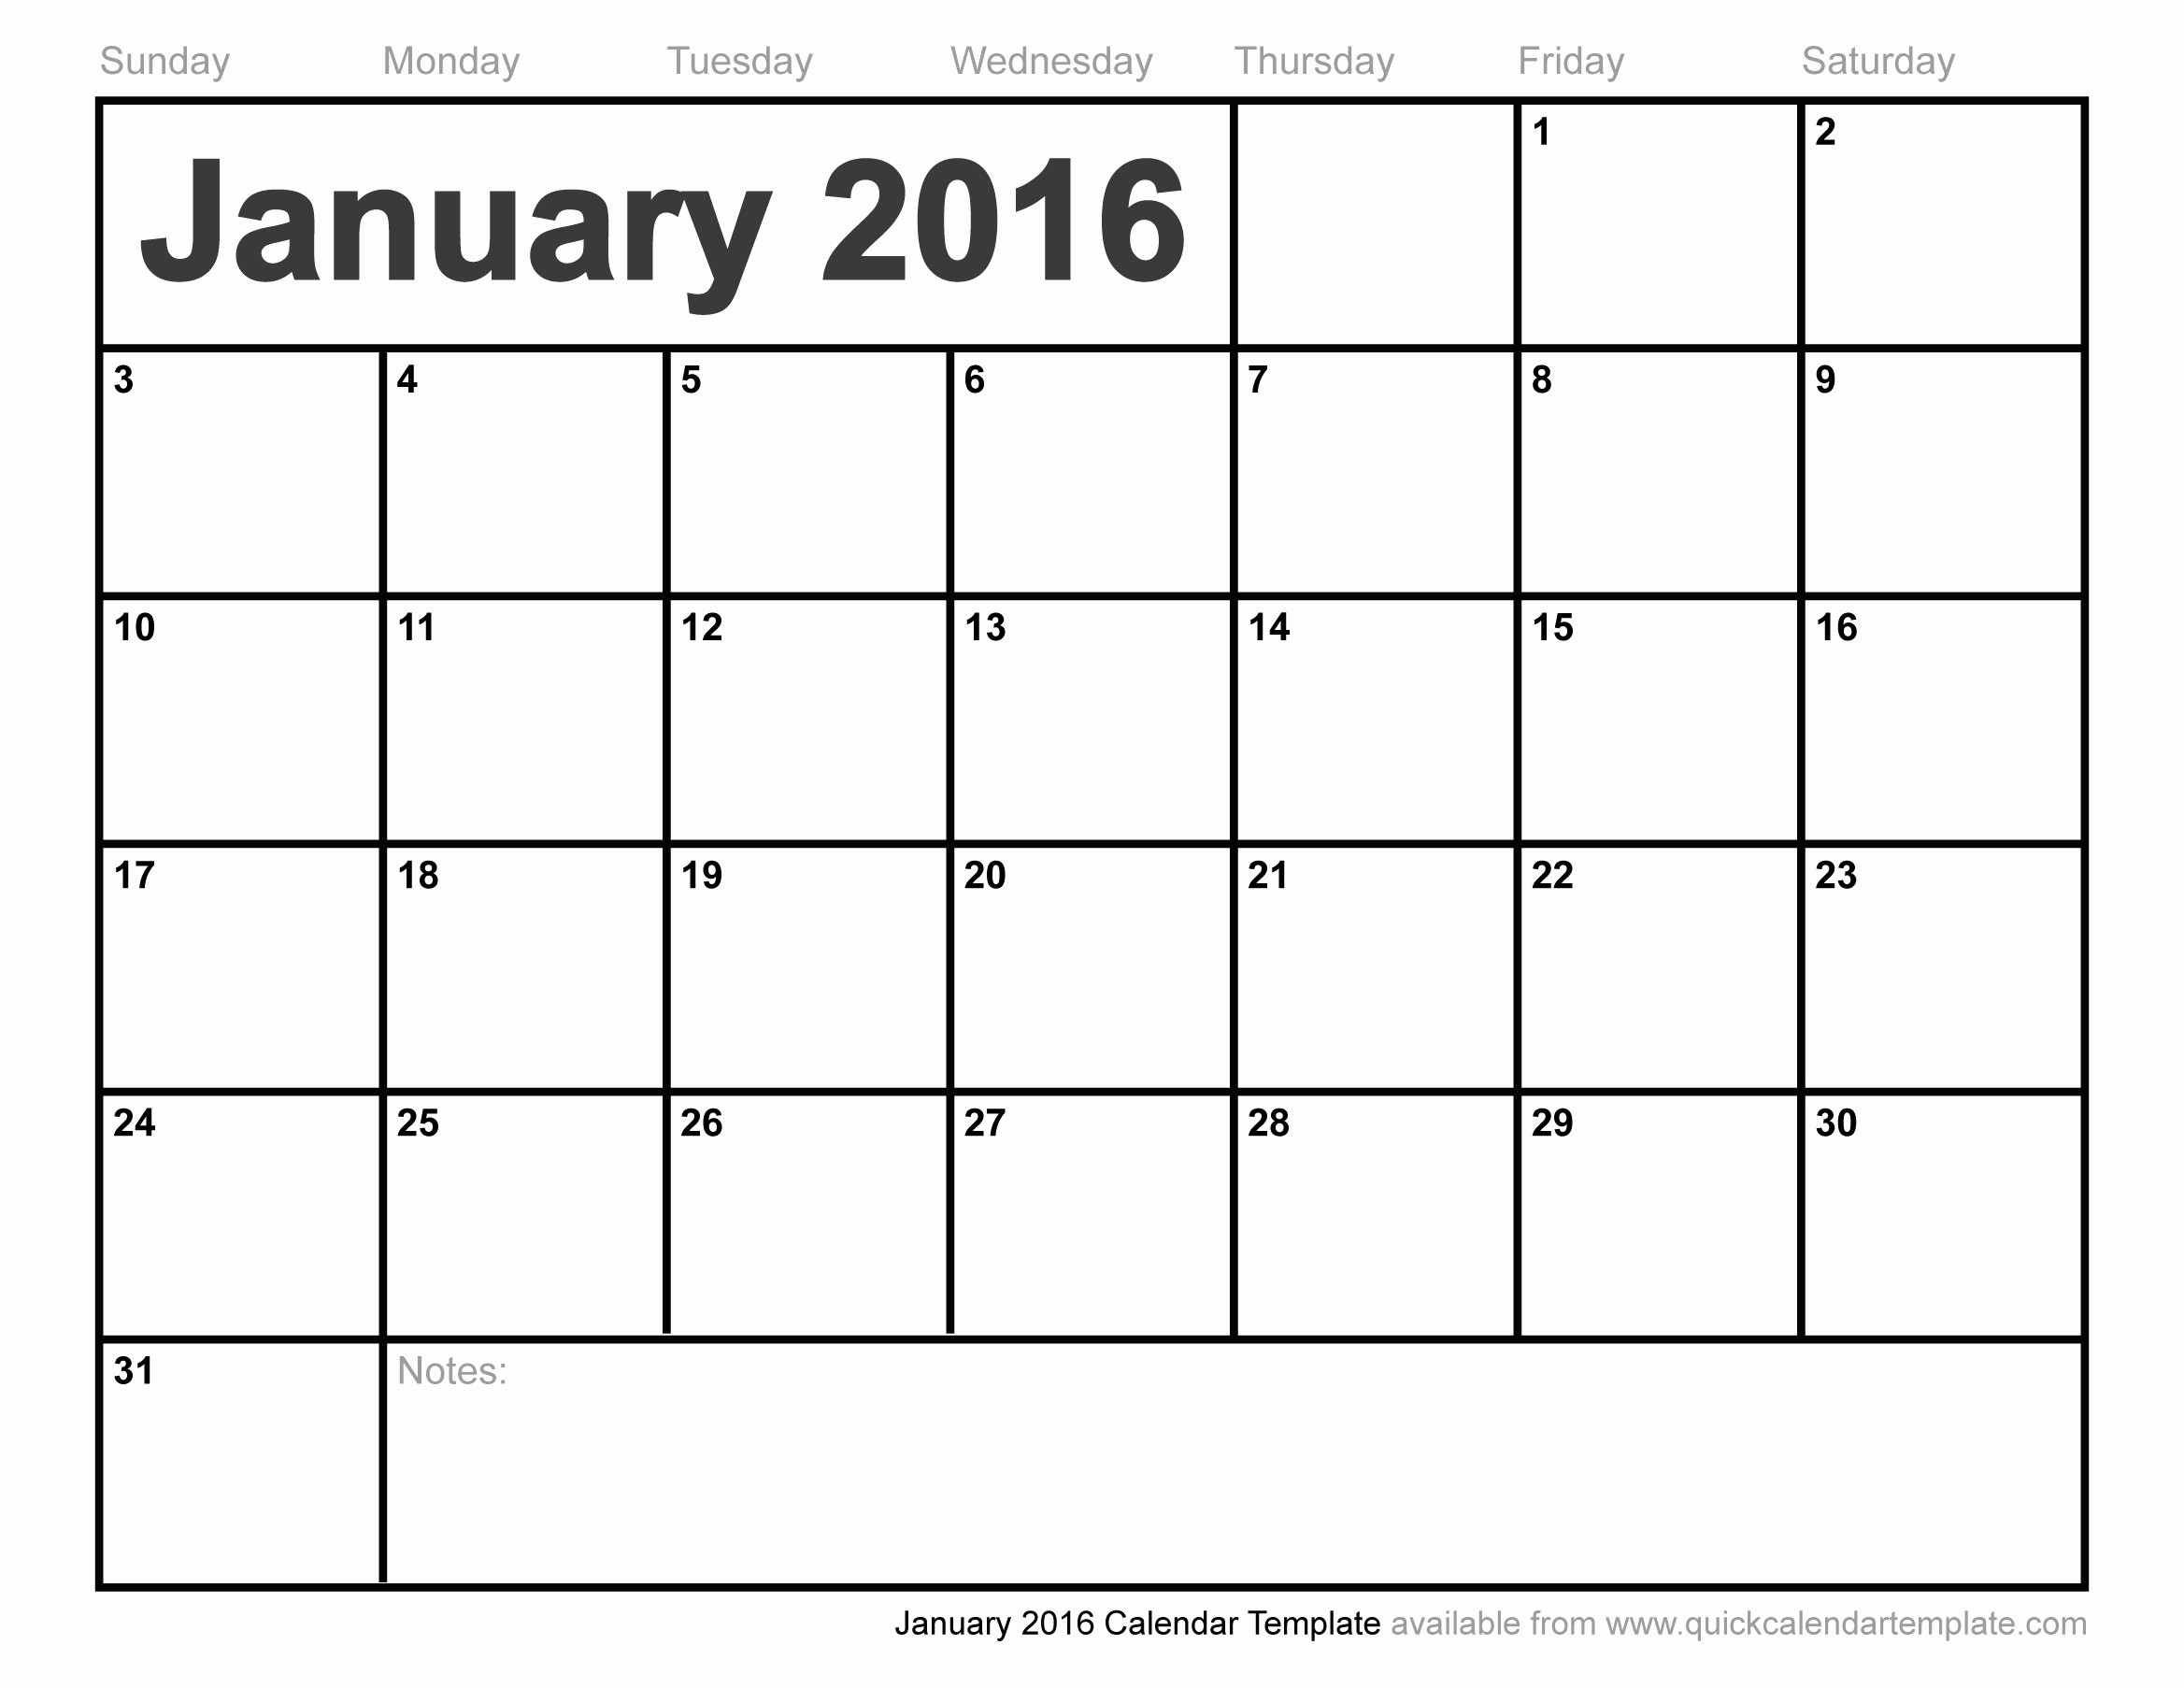 Free Year Calendar Template 2016 Best Of January 2016 Calendar Template